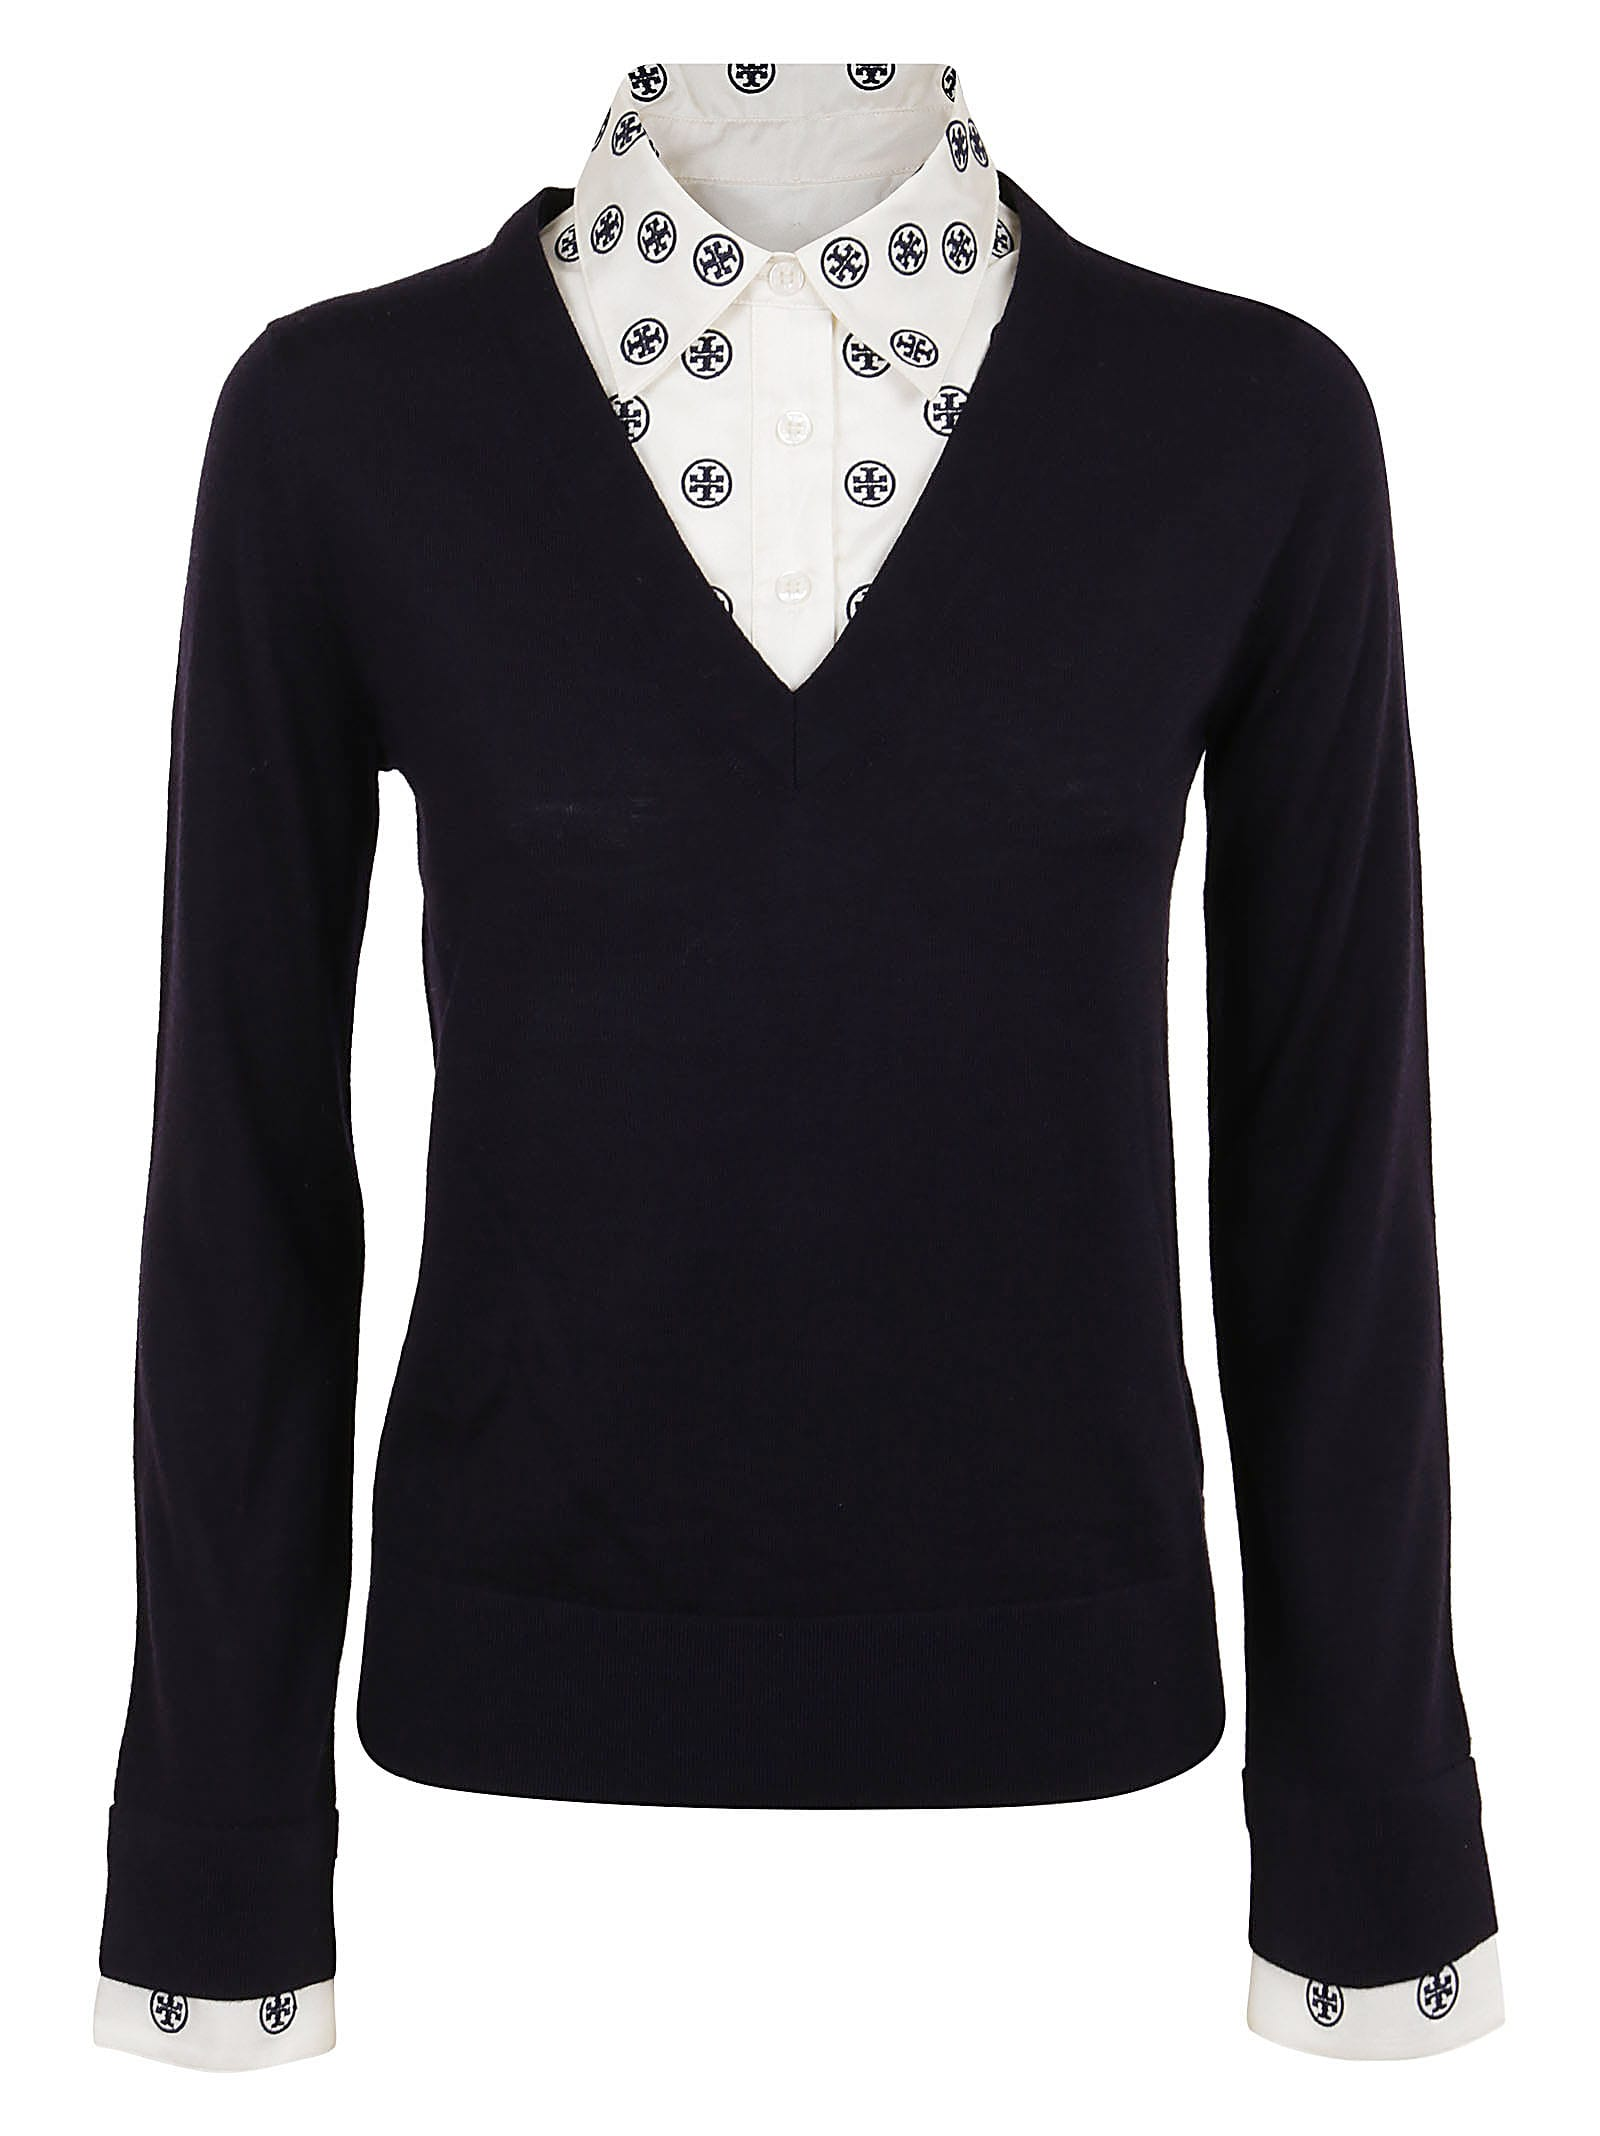 Tory Burch Downs DICKIE V-NECK SWEATER